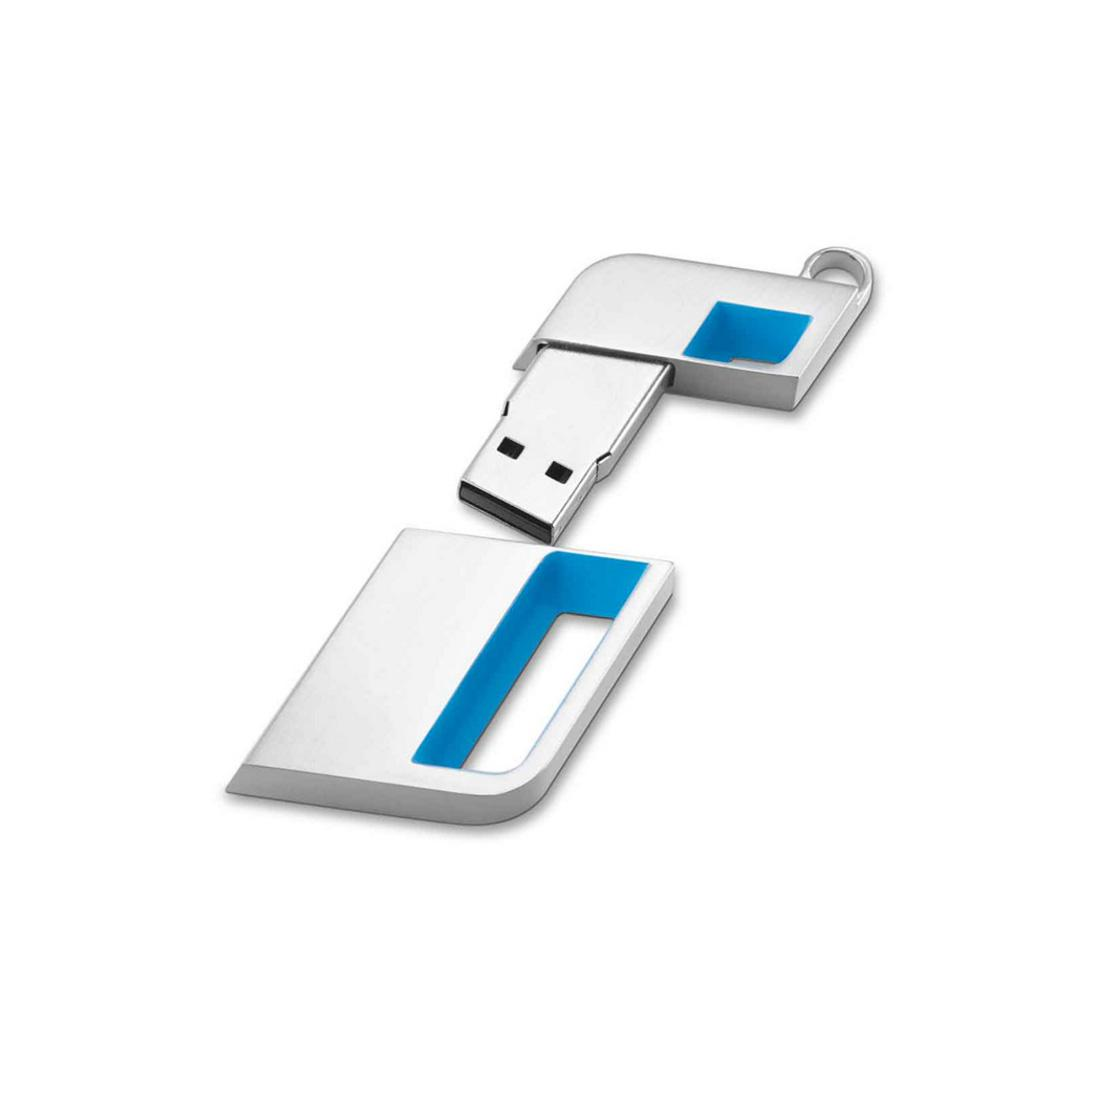 BMW i USB Stick